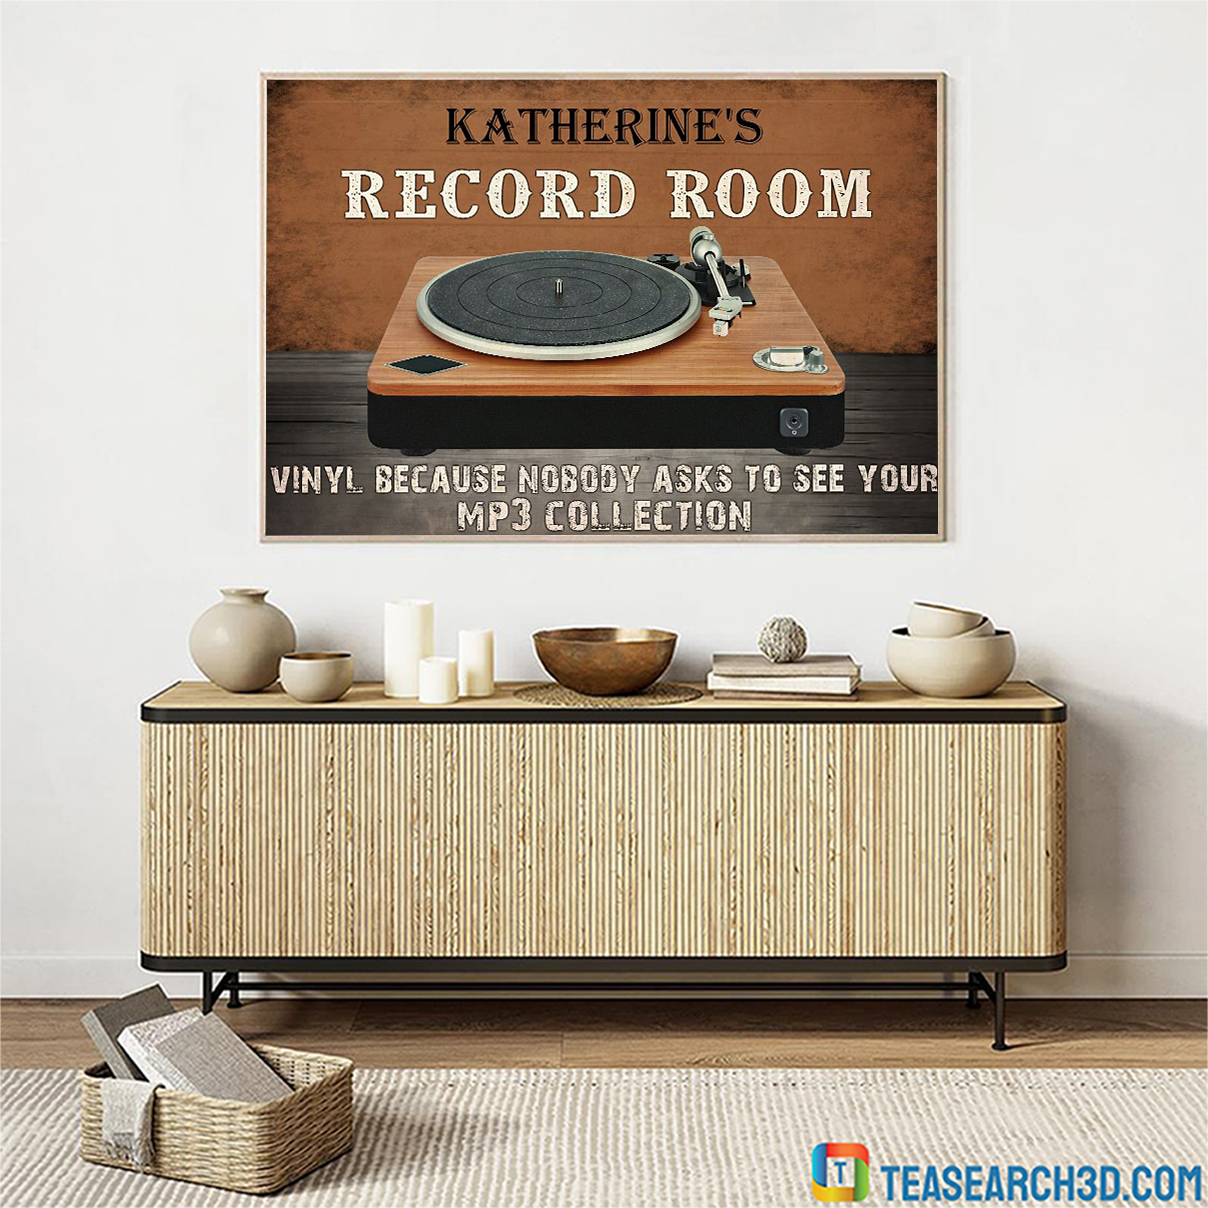 Personalized custom name record room vinyl because nobody asks to see poster A3